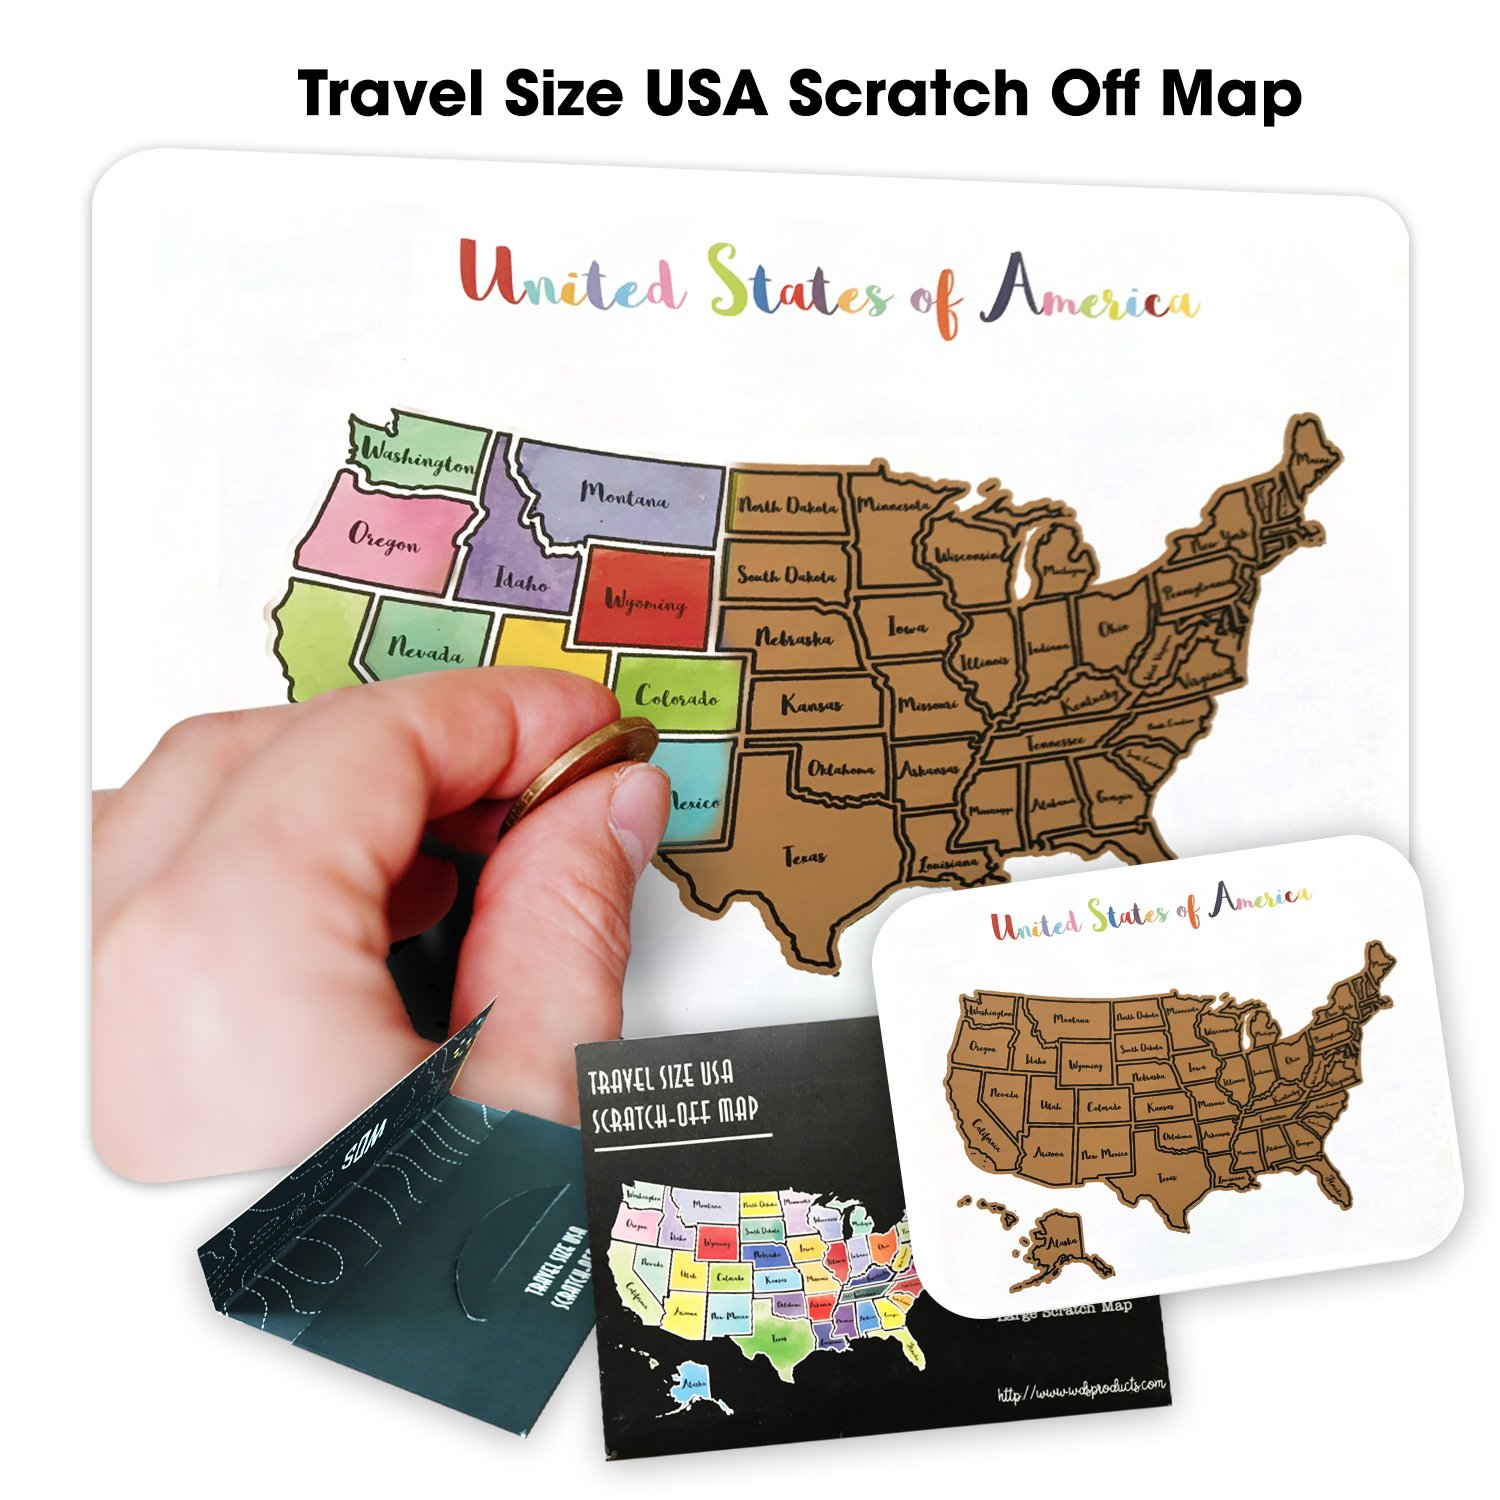 Travel Size USA Scratch Off Map - Play The License Plate Game for Kids During Car Ride Vacations & Travel - No-Bend Card Stock - Track The US 50 States - Safe Rounded Corners by WDS